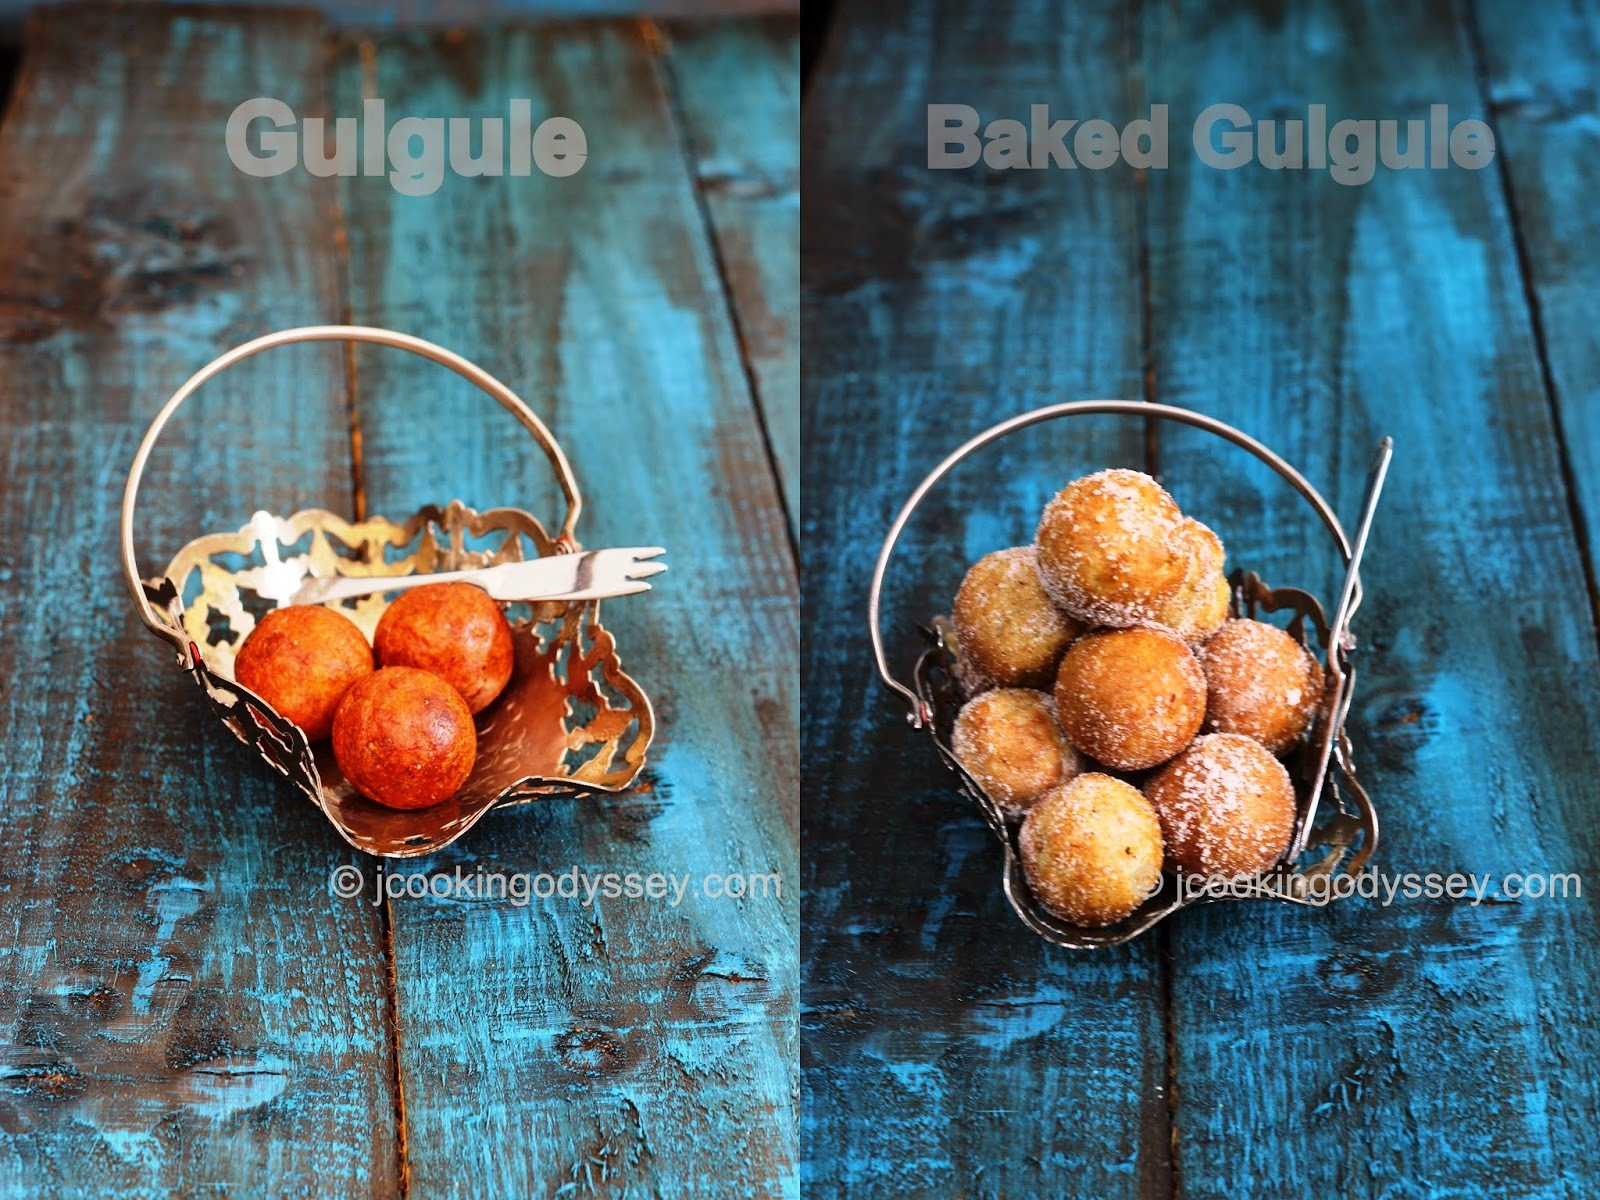 Traditional Gulgule - Baked Gulgule with Cinnamon - Wholemeal Jaggery Doughnuts with Cinnamon !